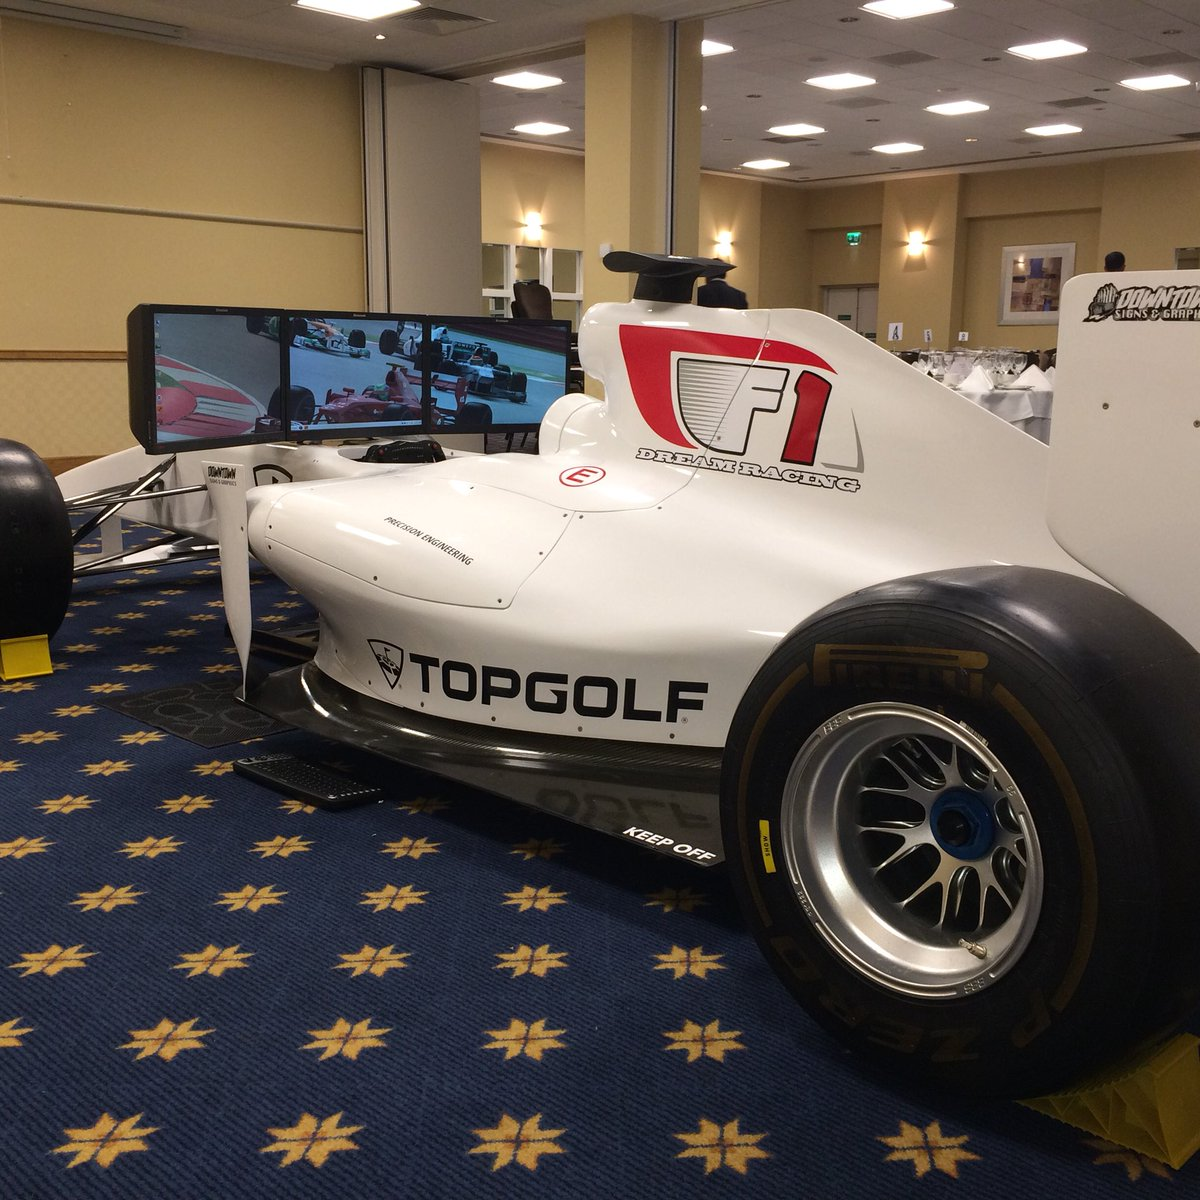 Dreamracing On Twitter For Sale This Full Size F1 Car Simulator